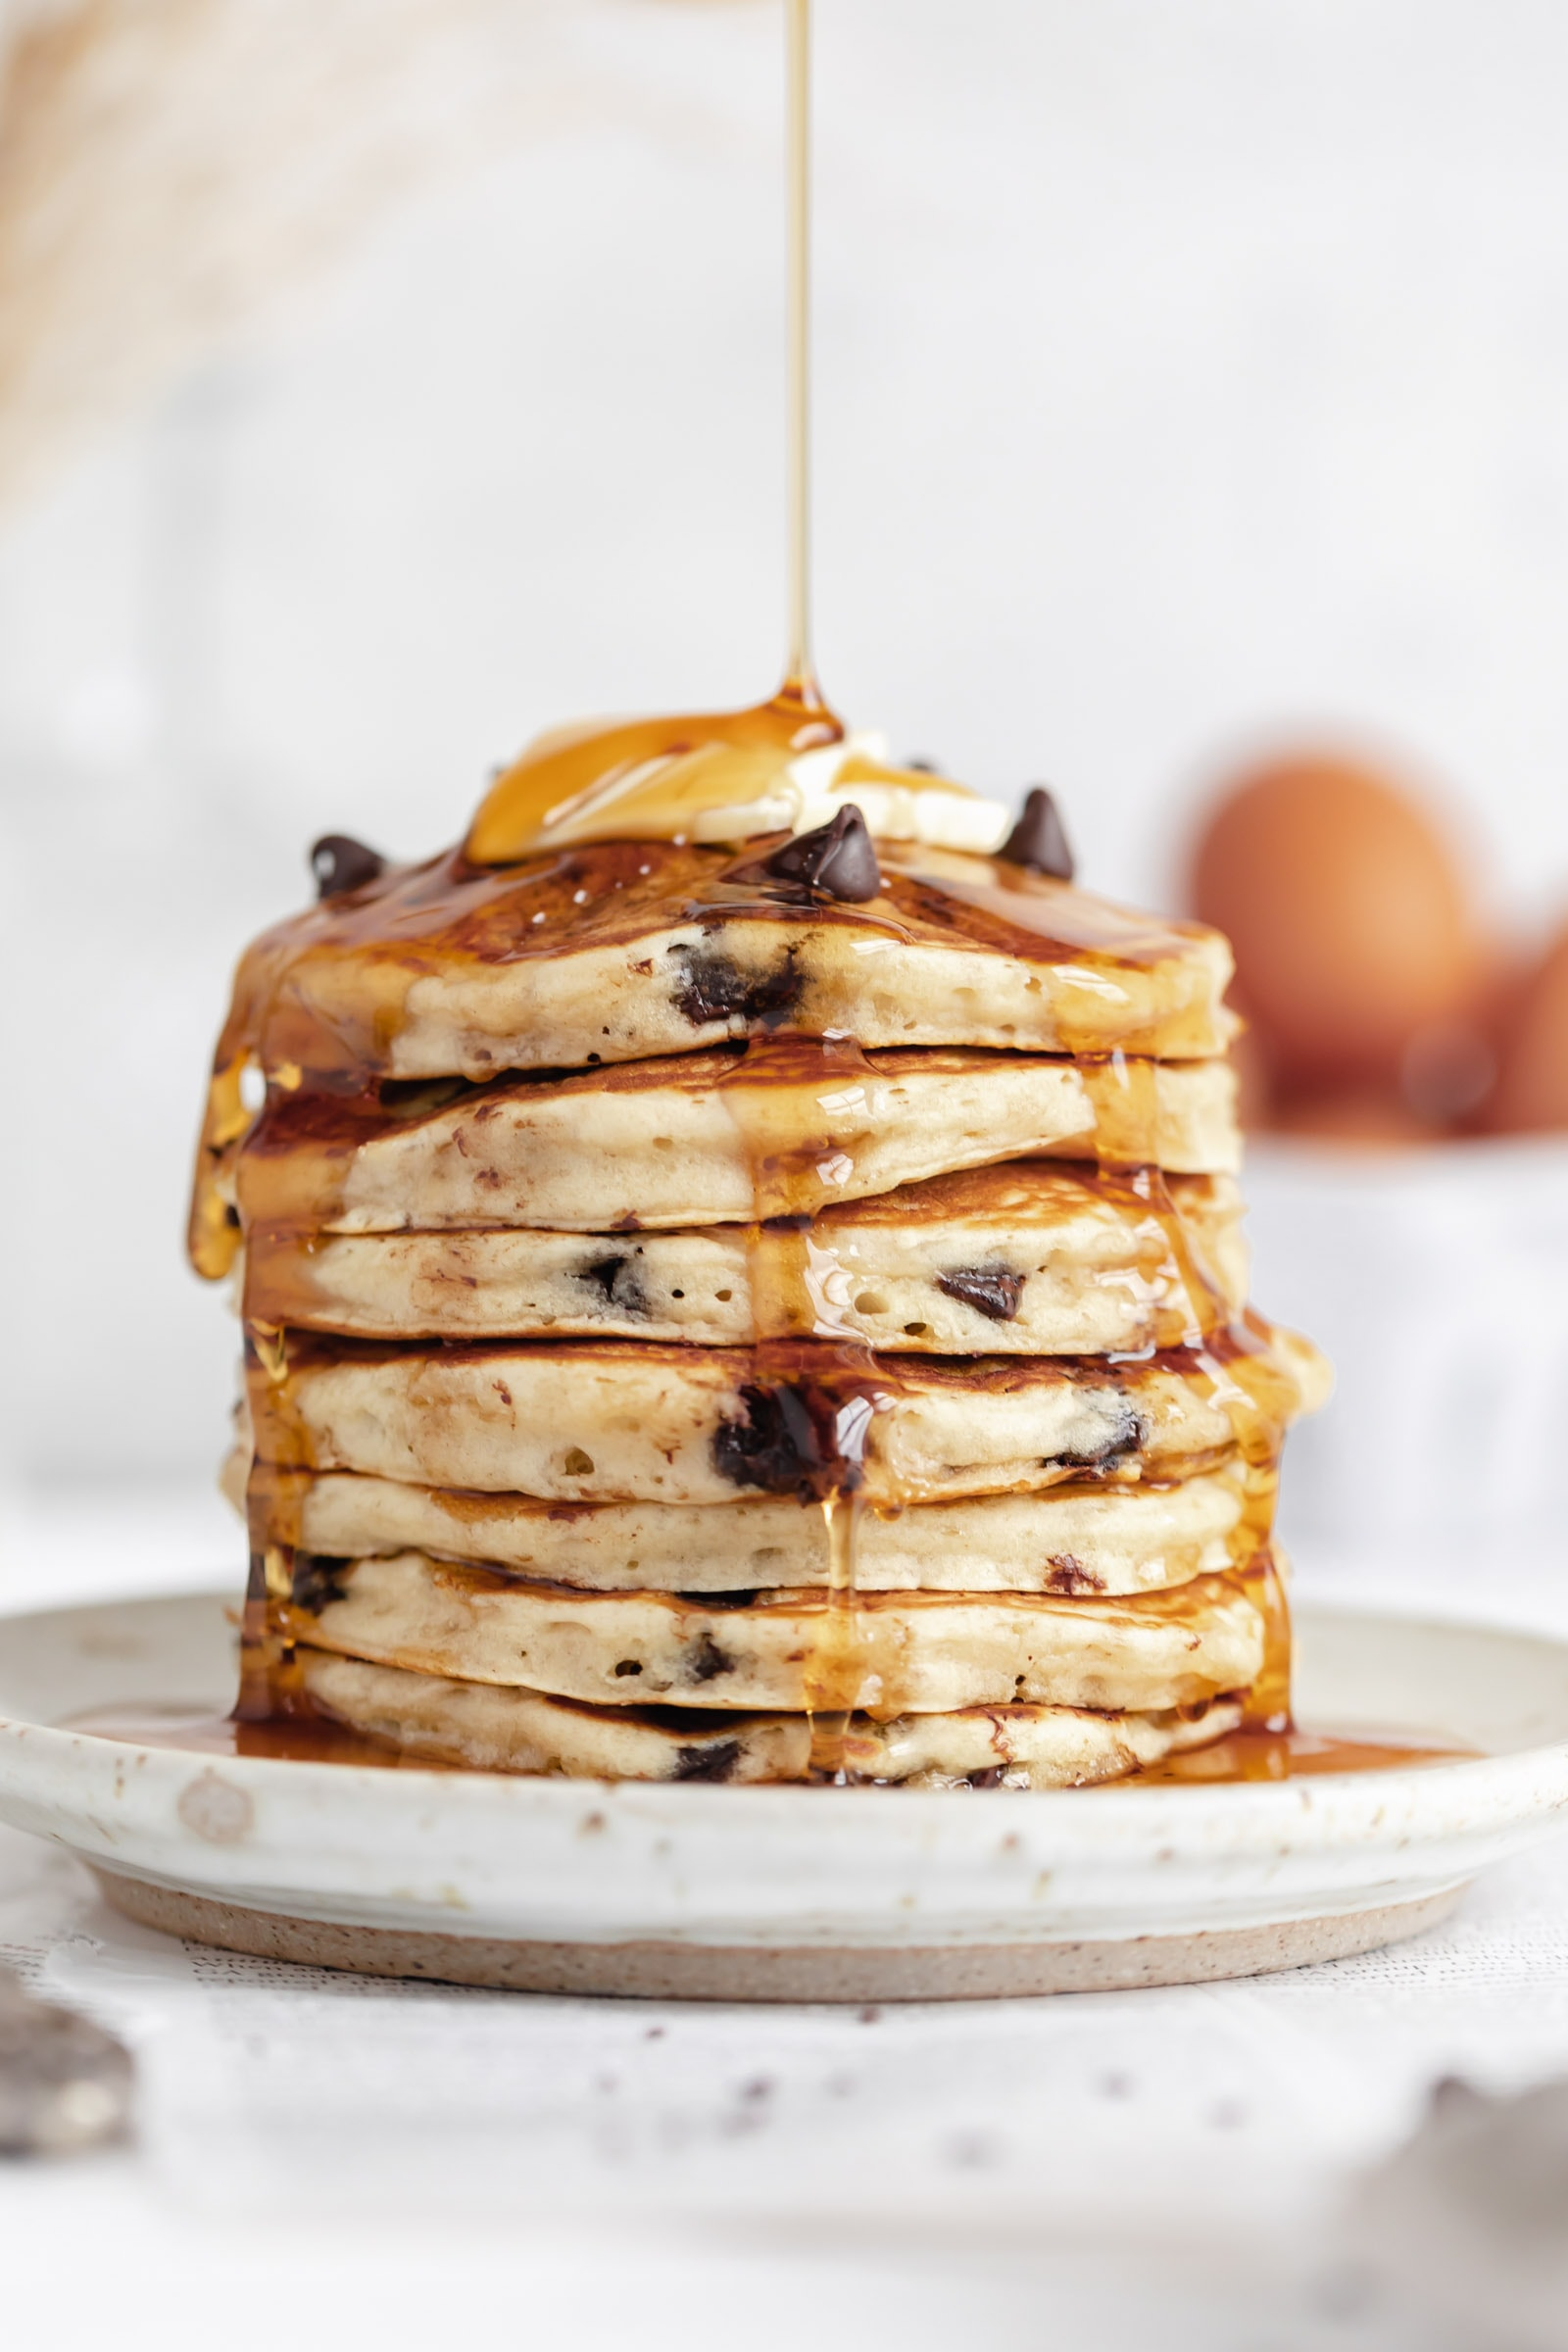 Chocolate Chip Pancakes The Best Sweet Breakfast Treat Broma Bakery